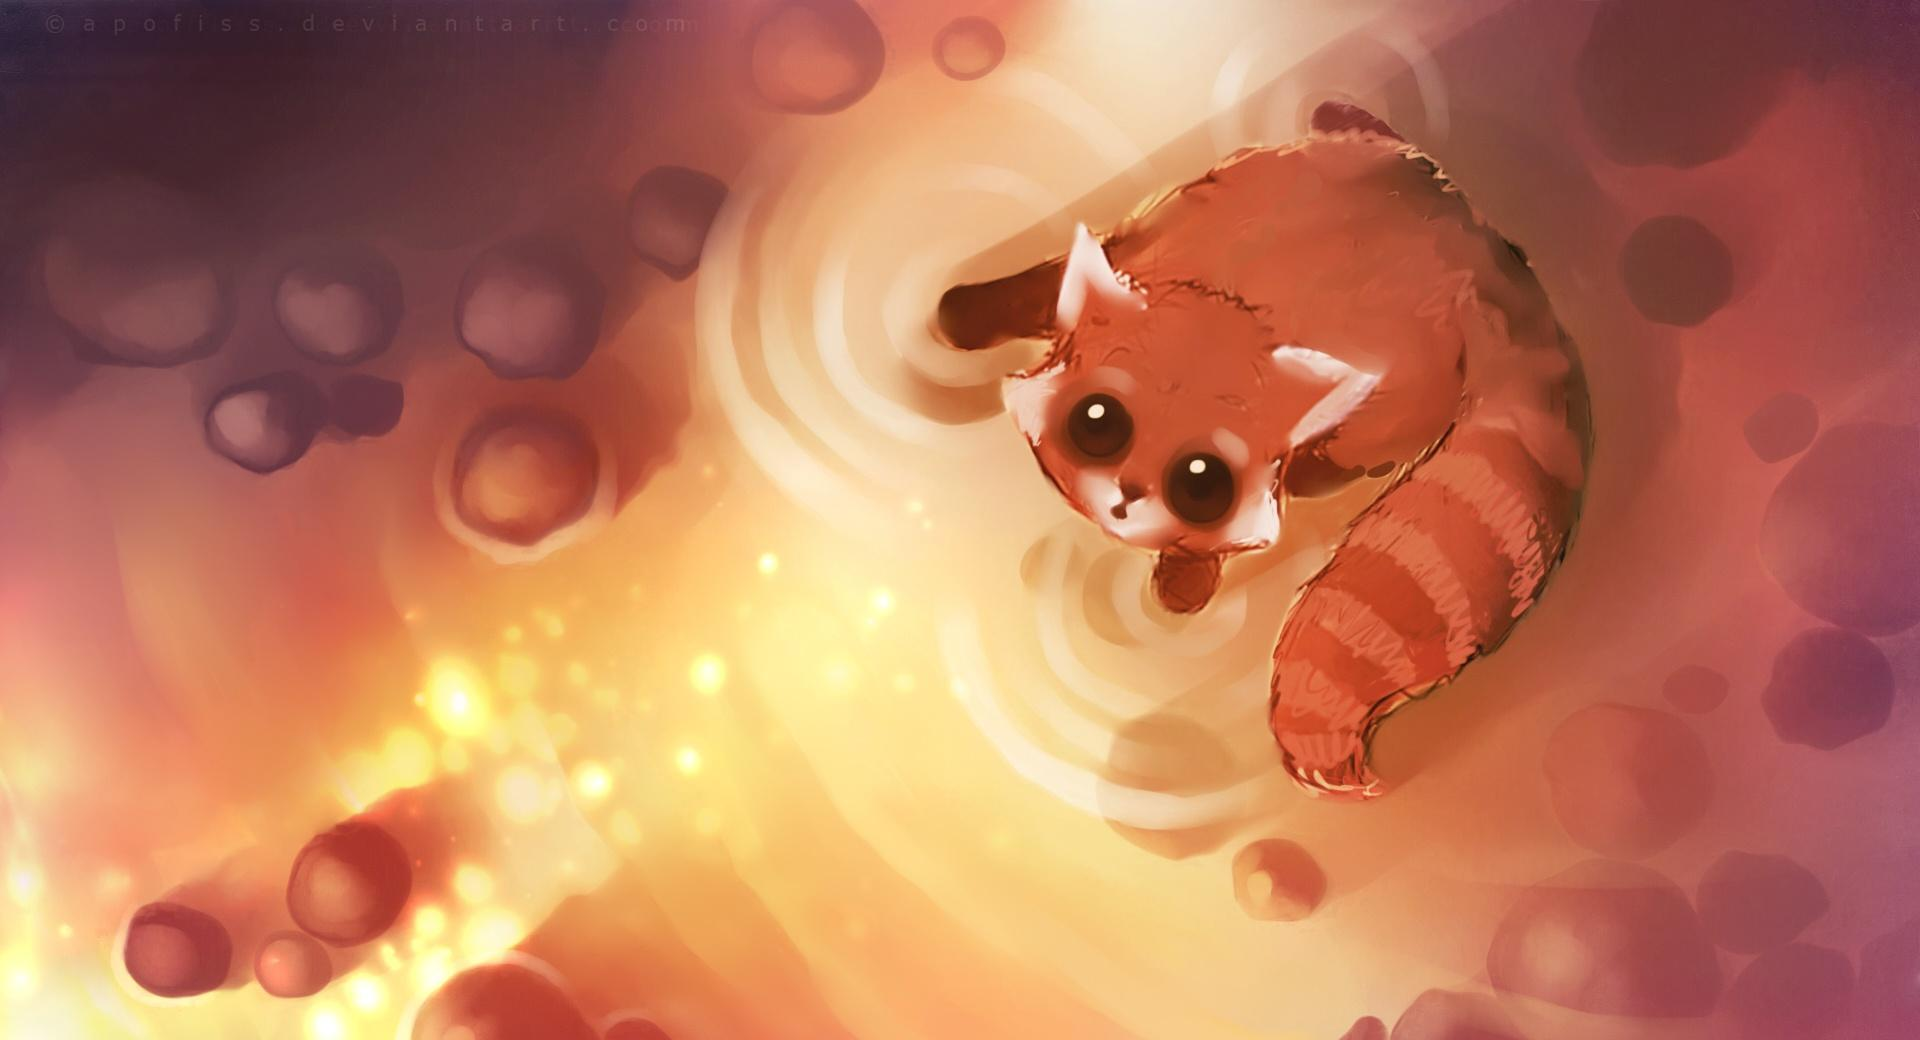 Shining Cat Painting wallpapers HD quality